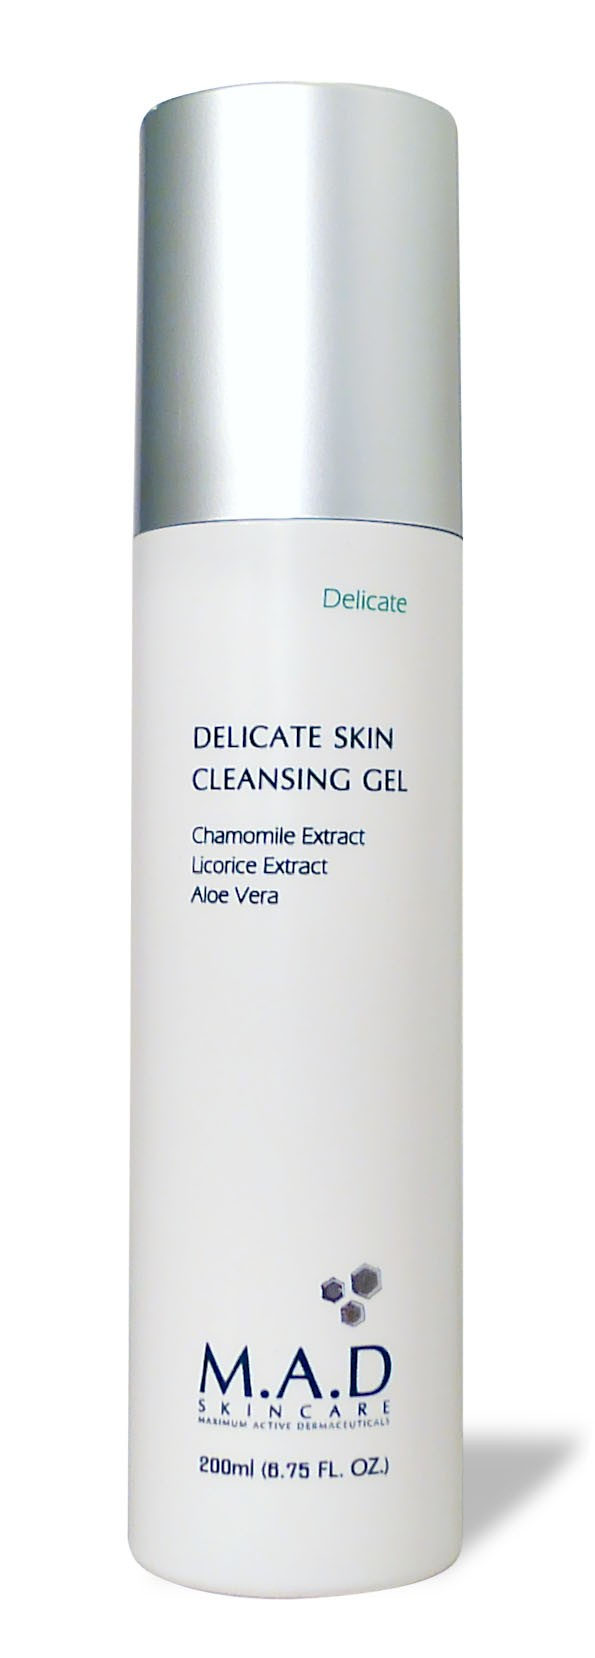 Mad Skincare | Delicate Skin Cleansing Gel | Skincare by Alana